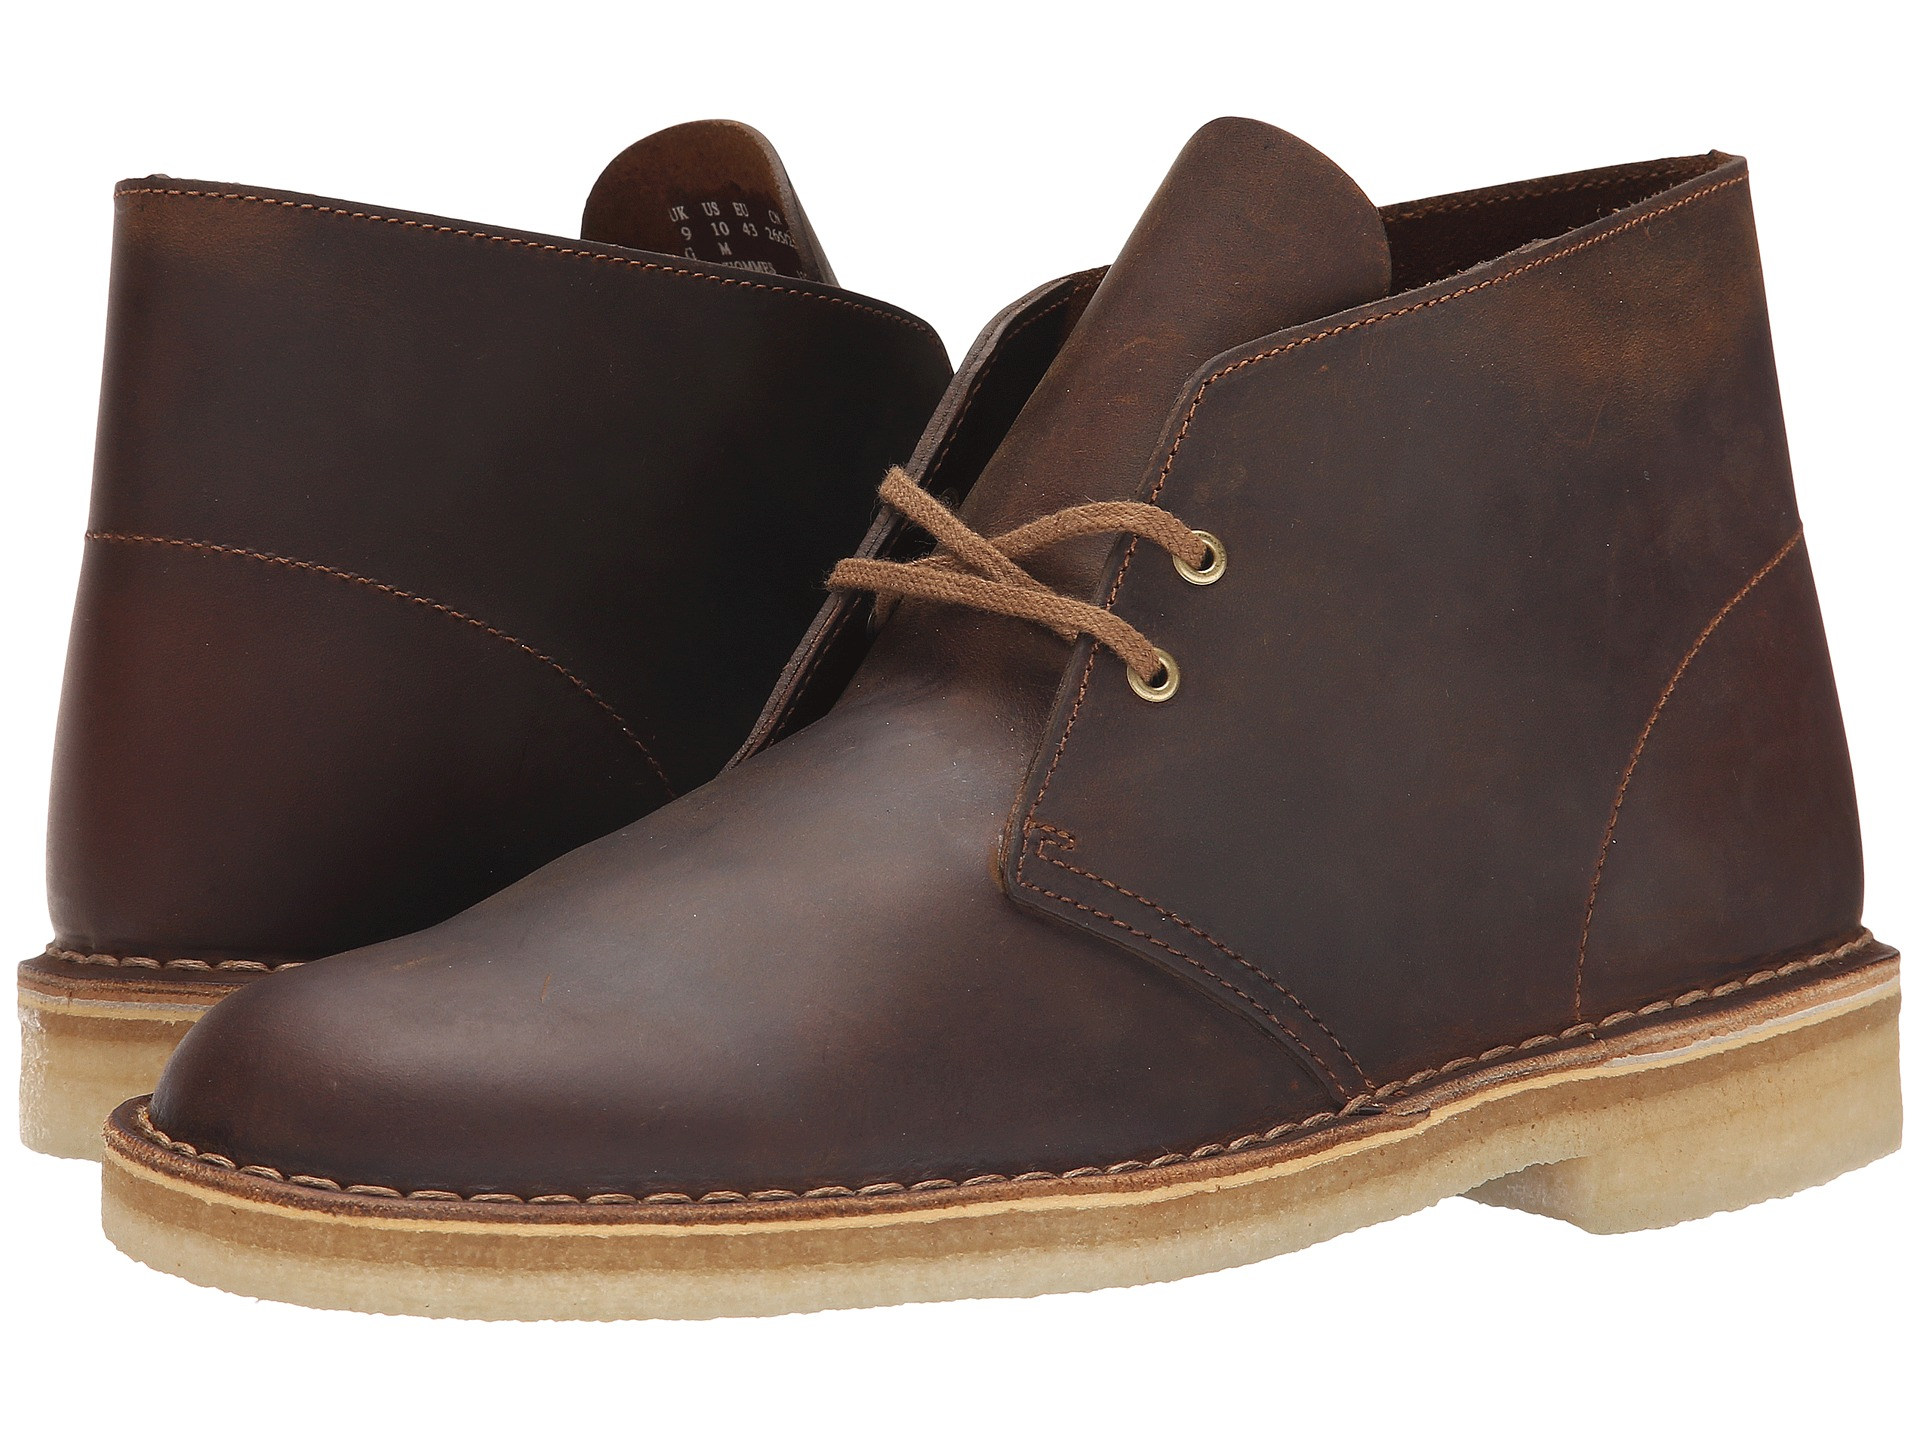 ugg desert boots for men blue -